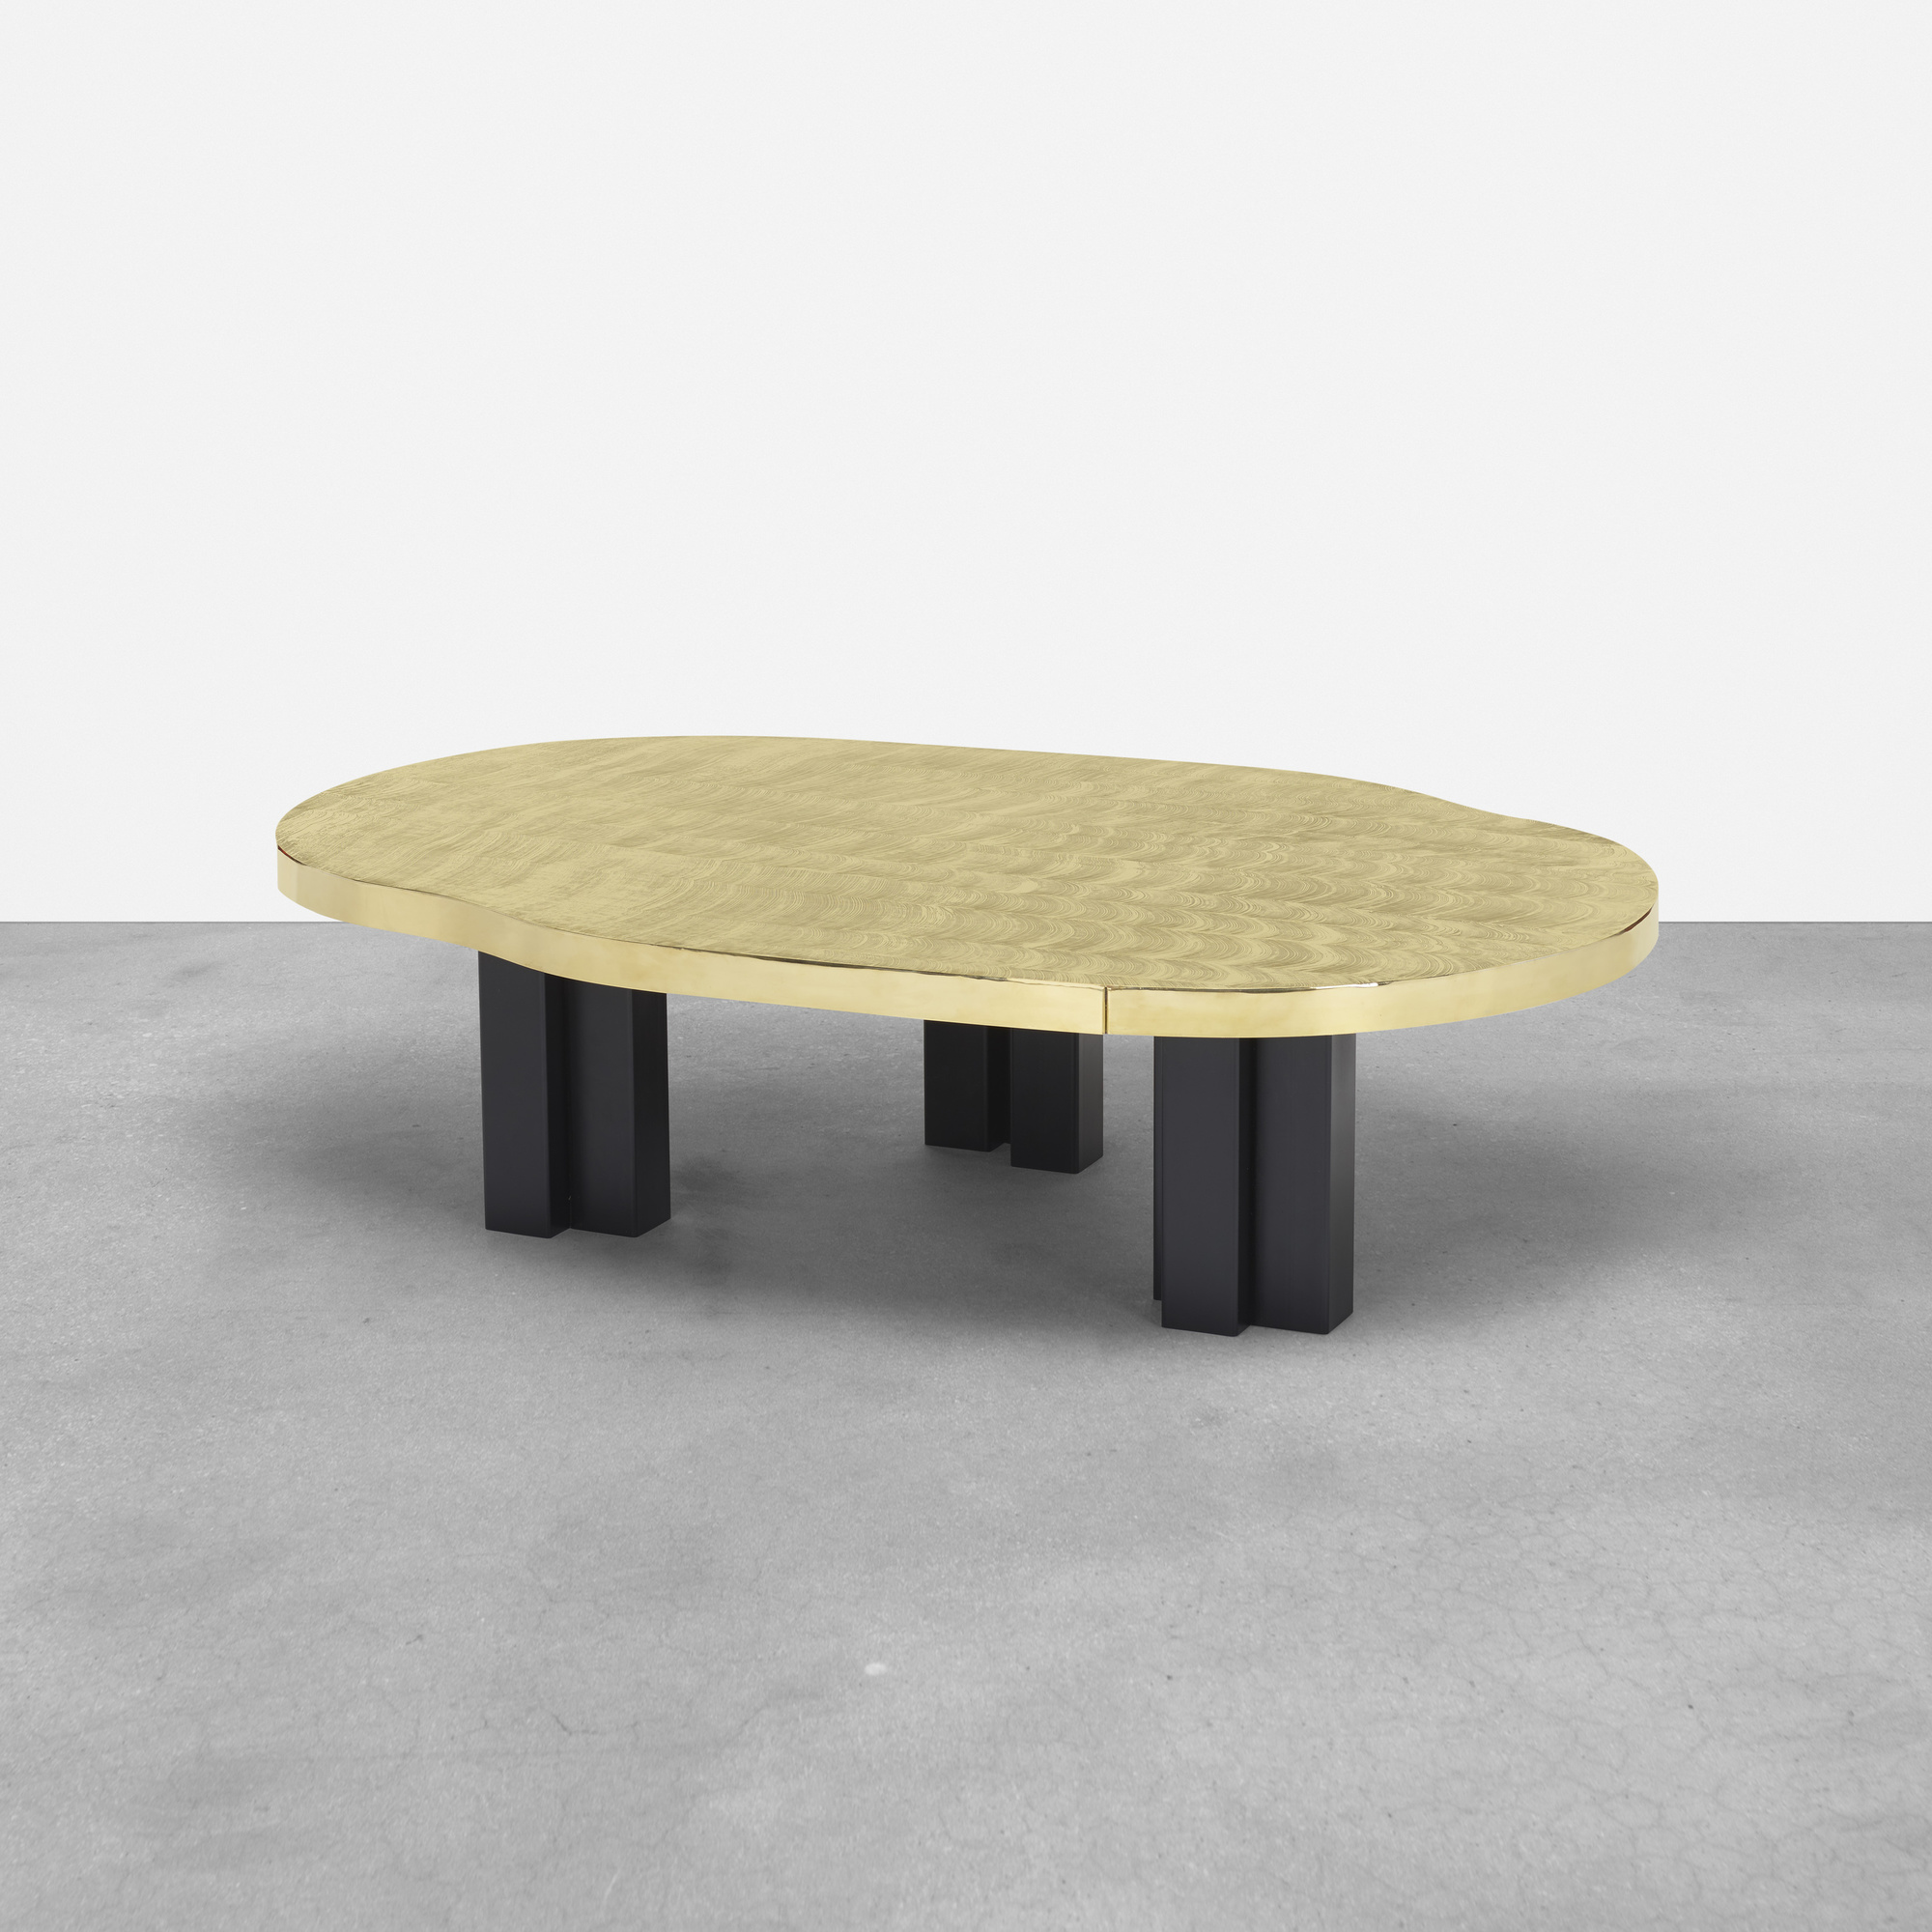 301: Christian Krekels / coffee table (1 of 2)